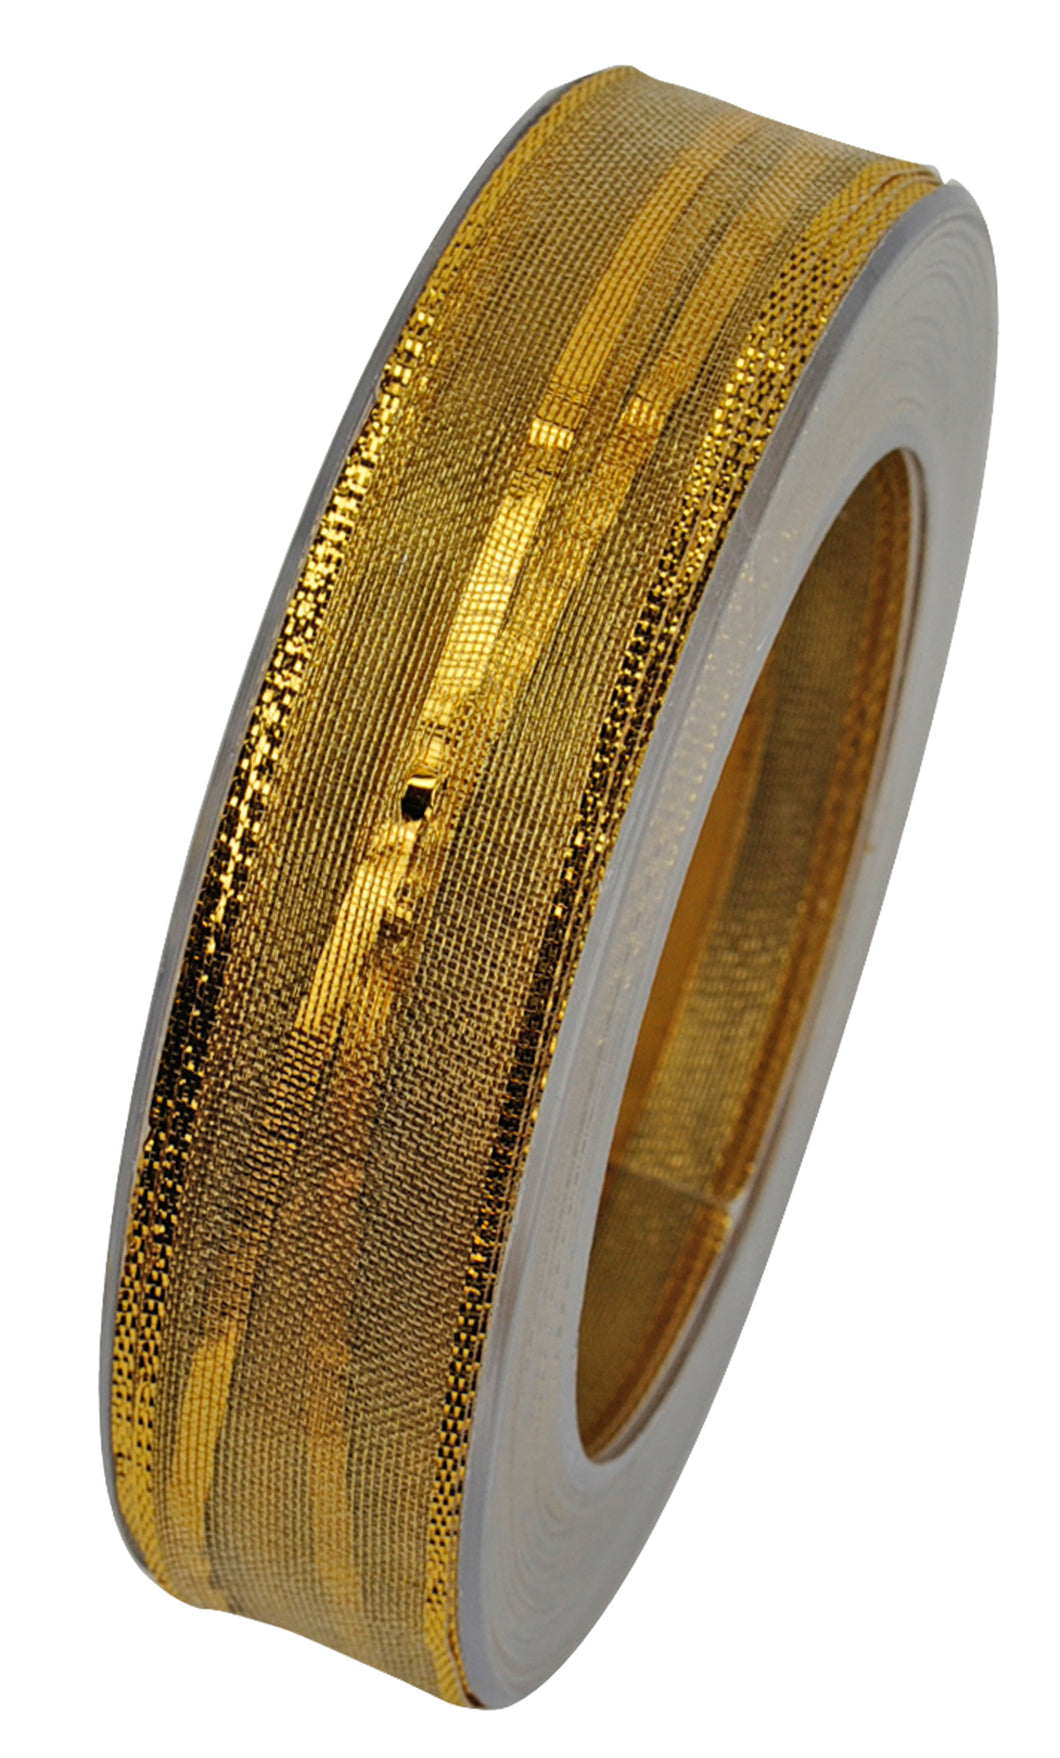 Cabaret-Susifix ribbon in gold, 25m (x2)